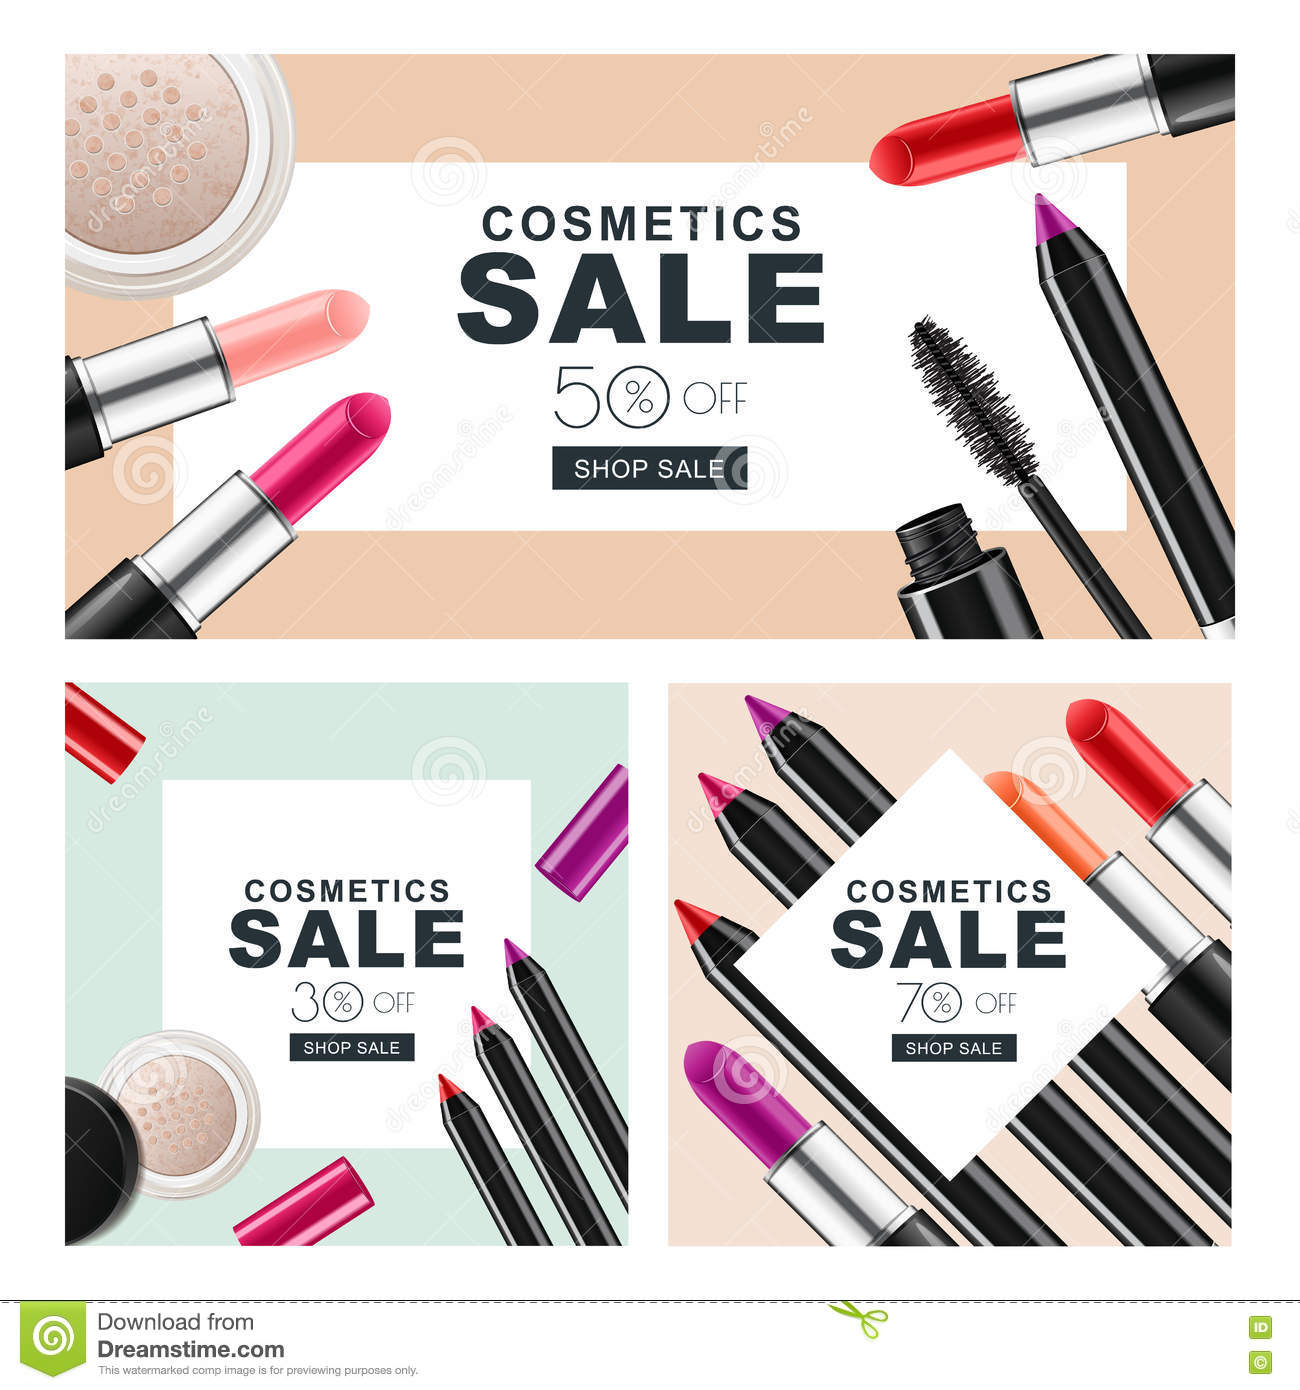 Makeup Sale Online – Discover The Secret To Professional ...